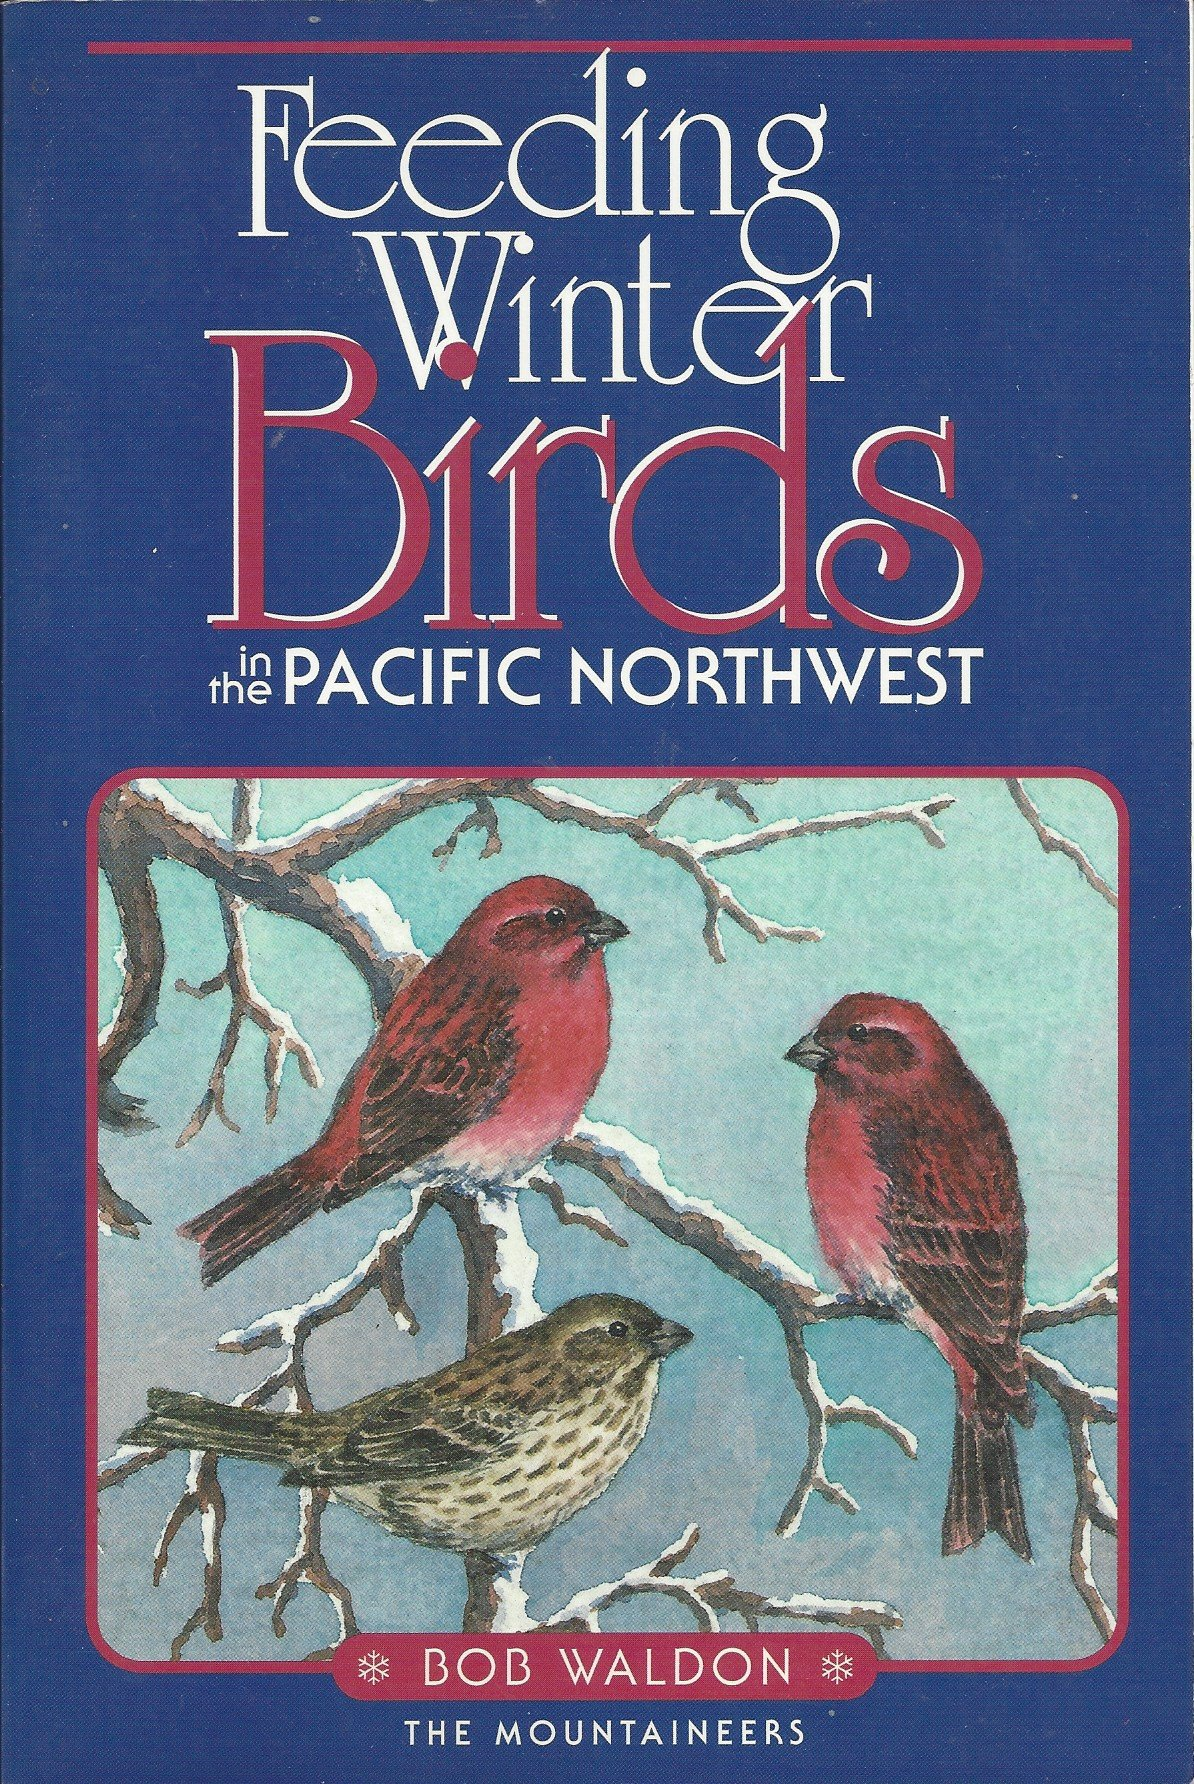 feeding winter birds in the pacific northwest robert waldon